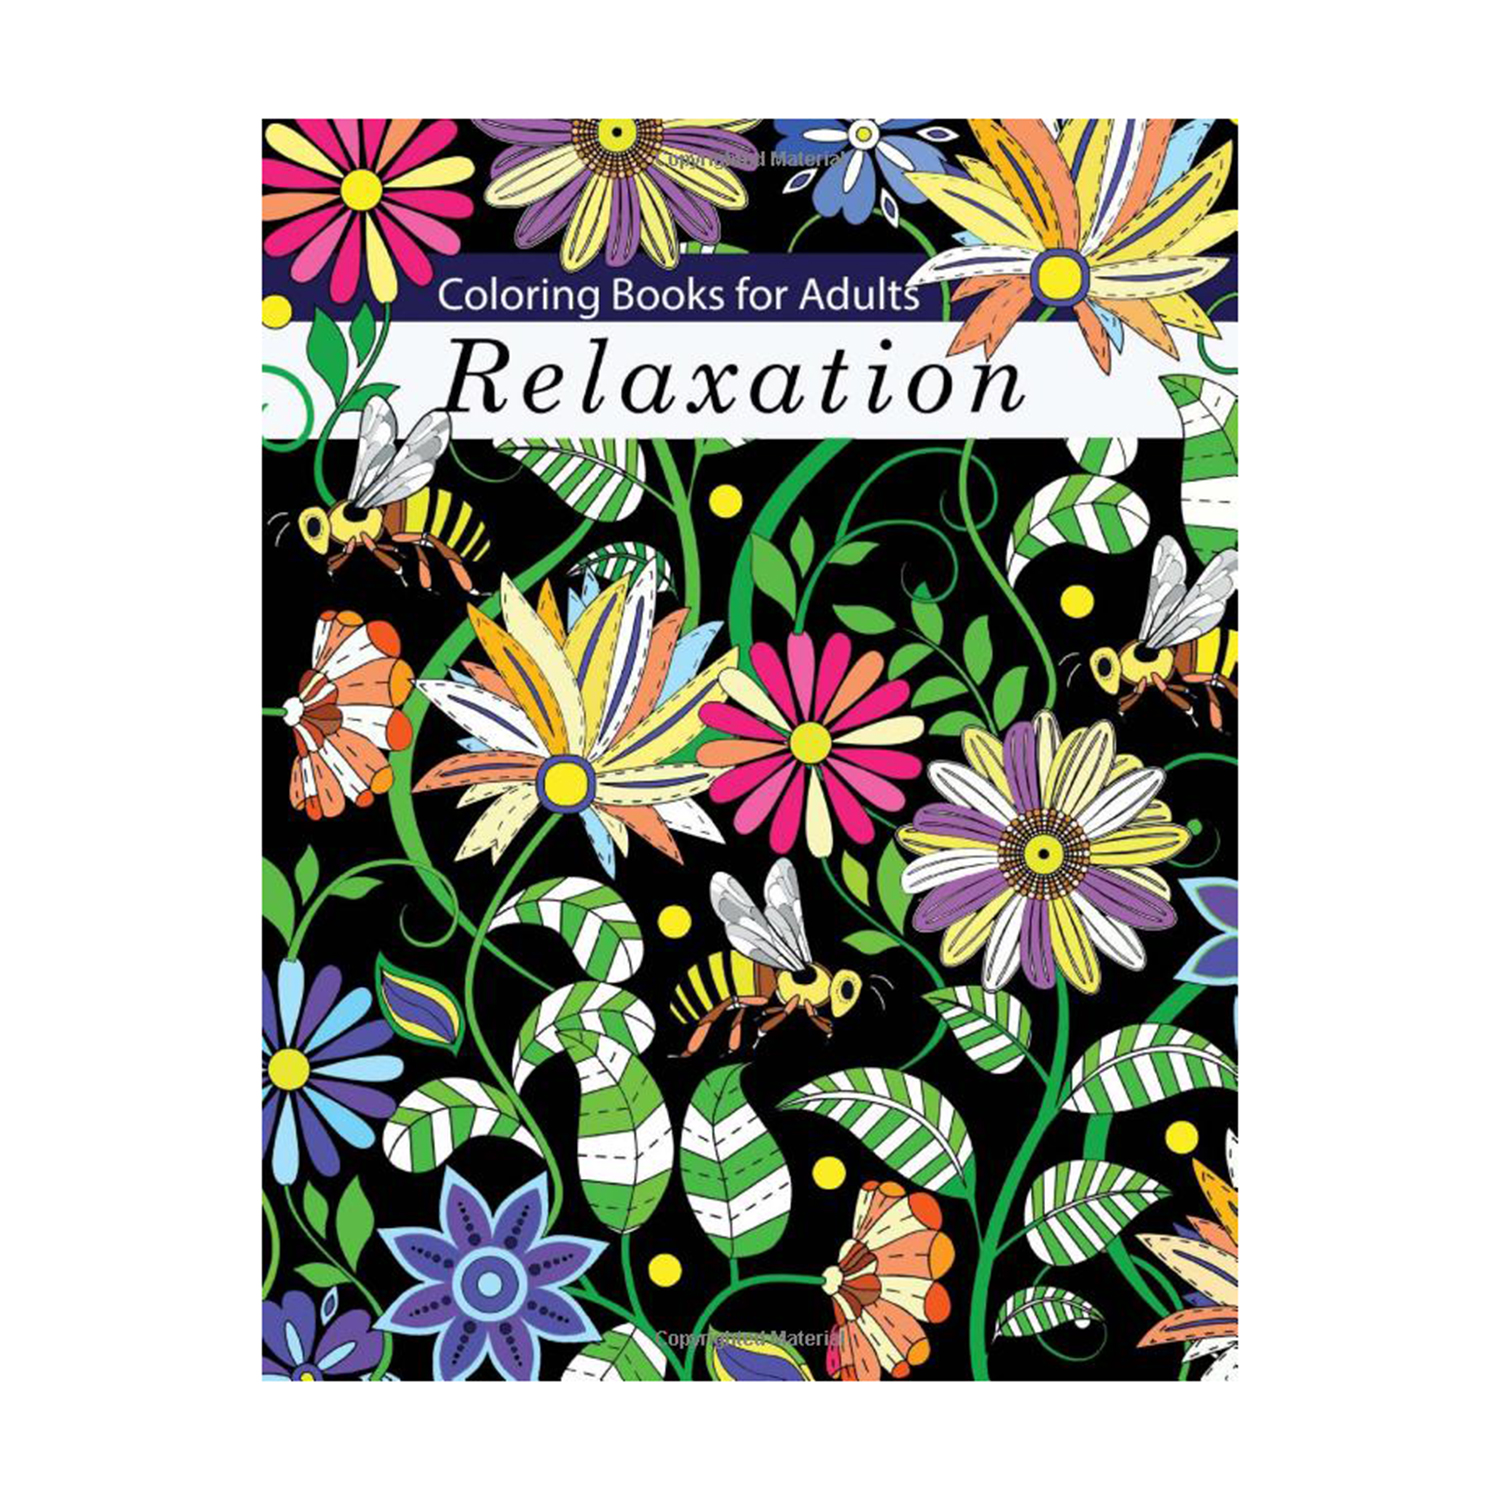 Coloring Books for Adults Relaxation: Adult Coloring Books